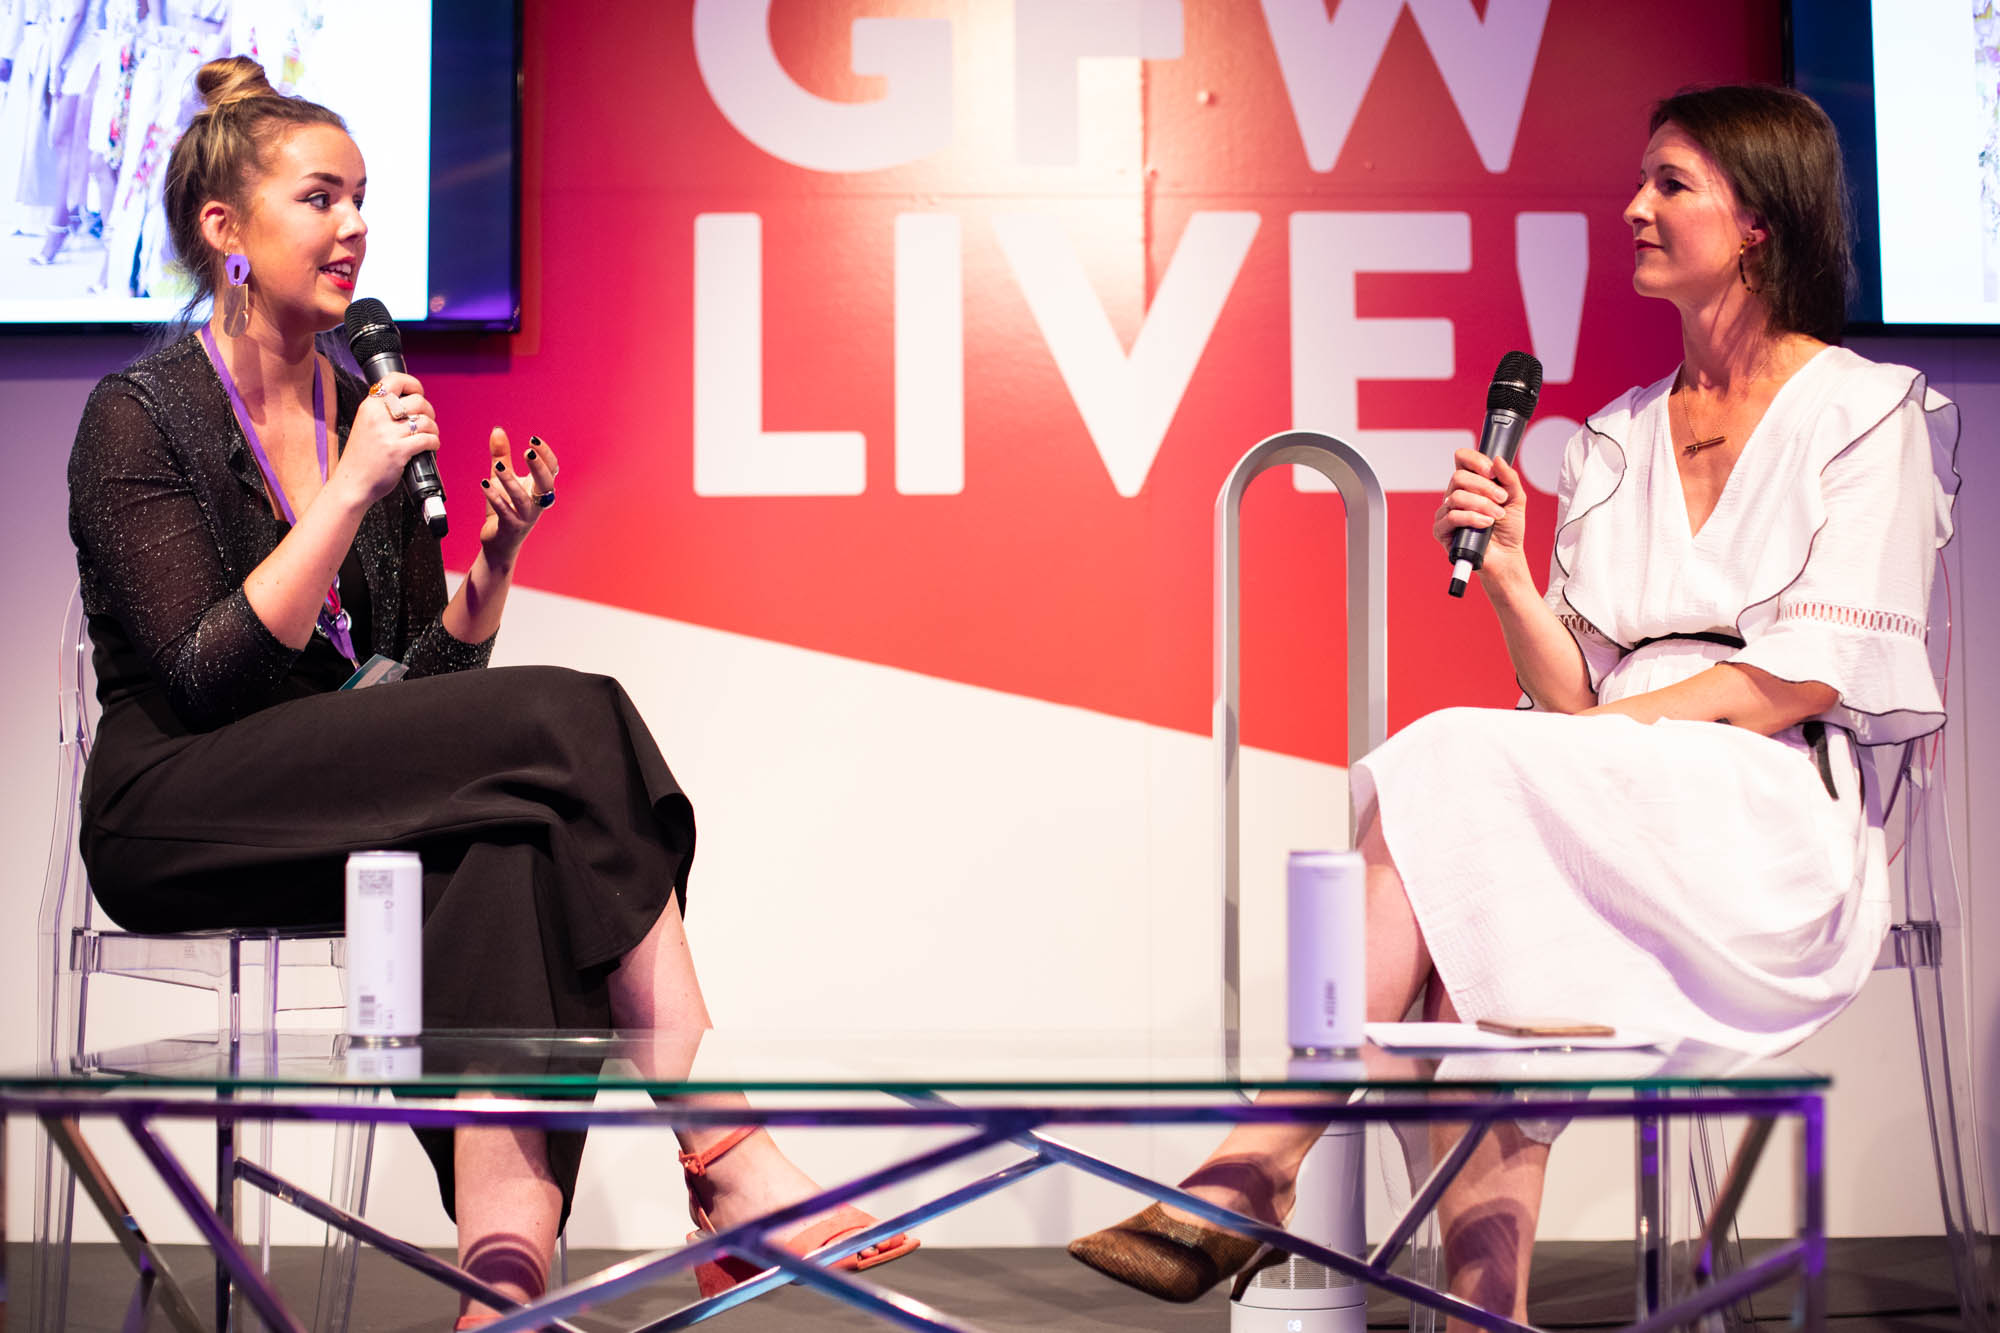 Claire Tagg Talk  050618 Imageby Lily-3.jpg